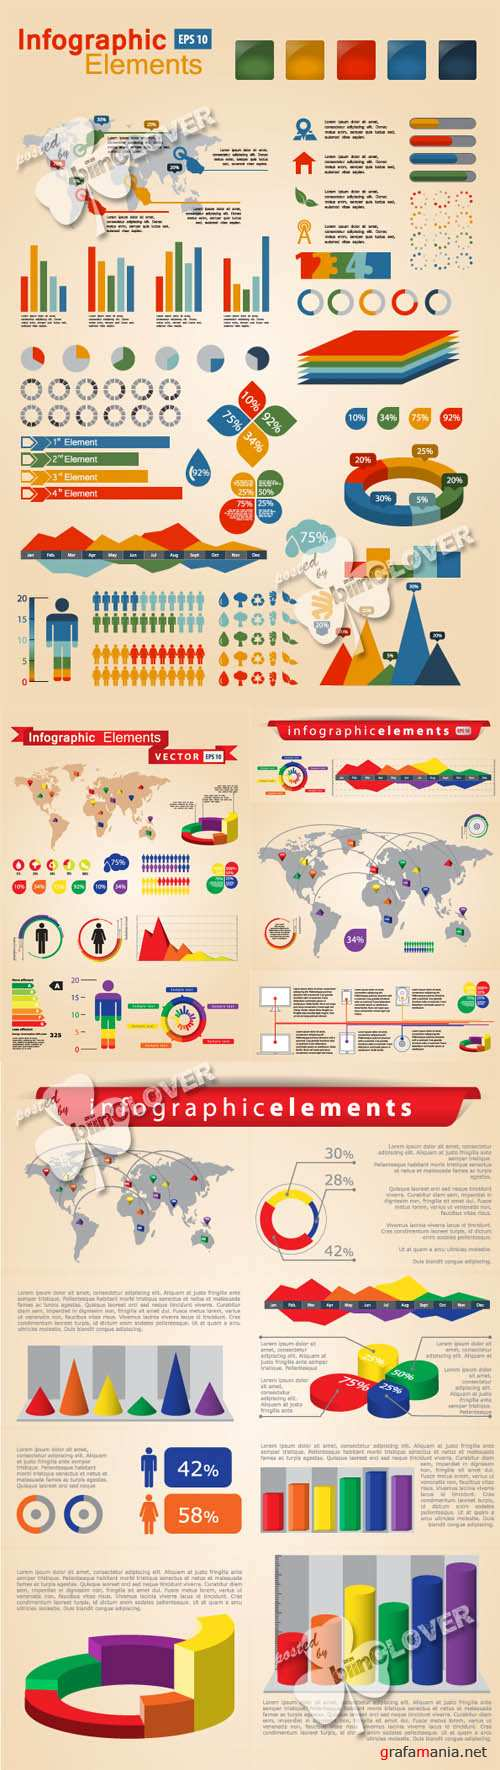 Set of infographic elements 0173